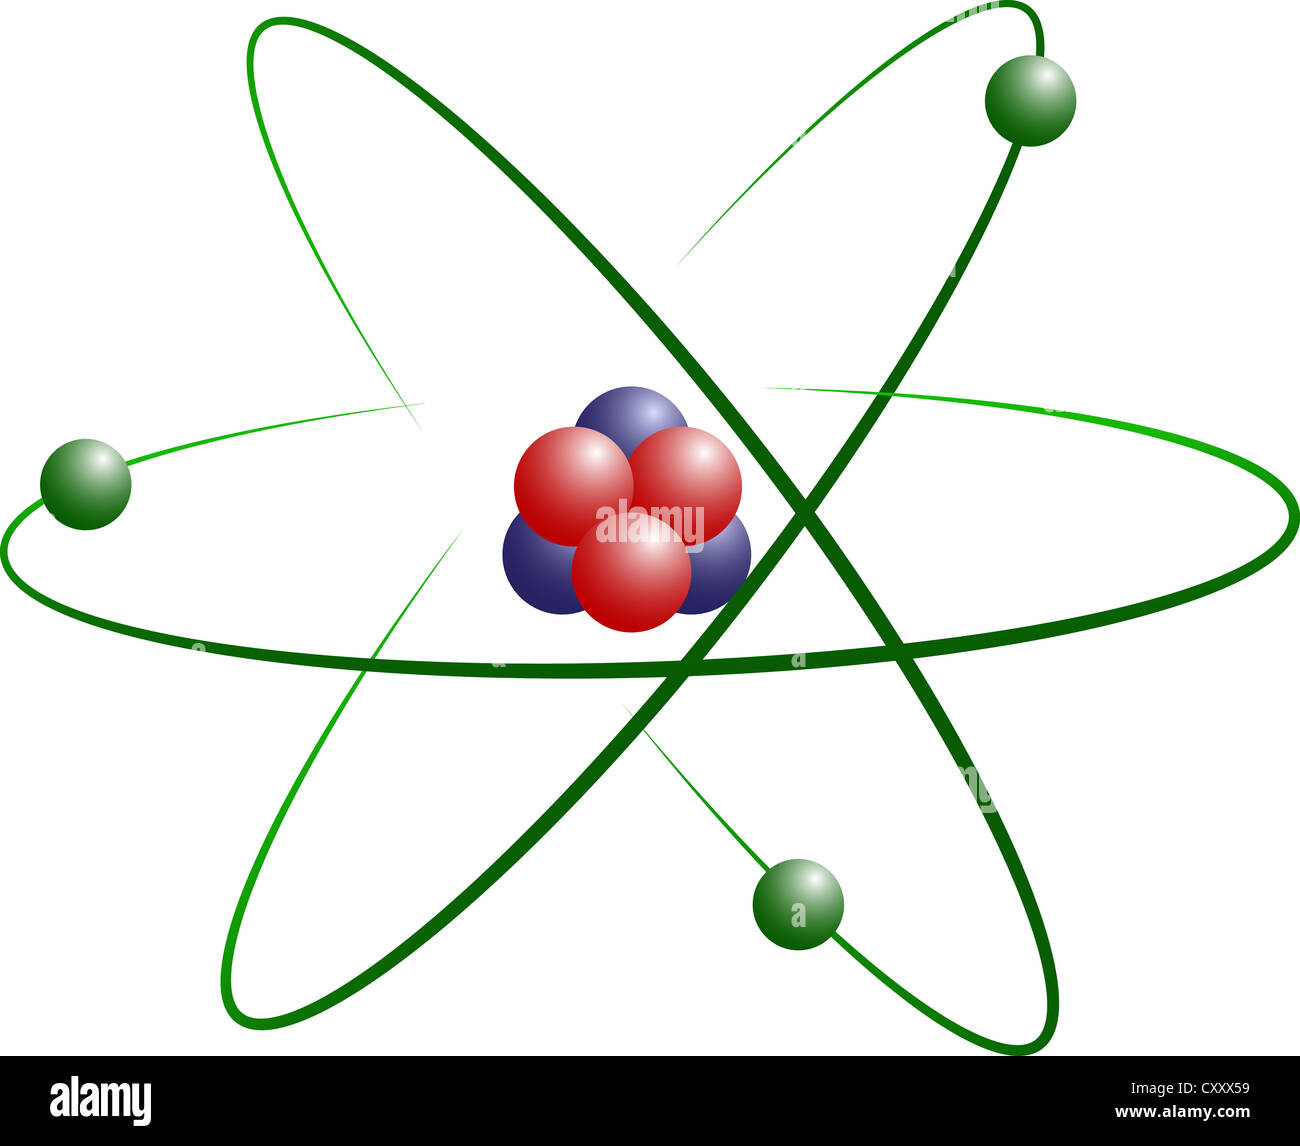 Atom Diagram Lithium Custom Wiring Oxygen Structure Stock Photo Model Of With Protons Electrons And Neutrons Rh Alamy Com Fluorine Beryllium